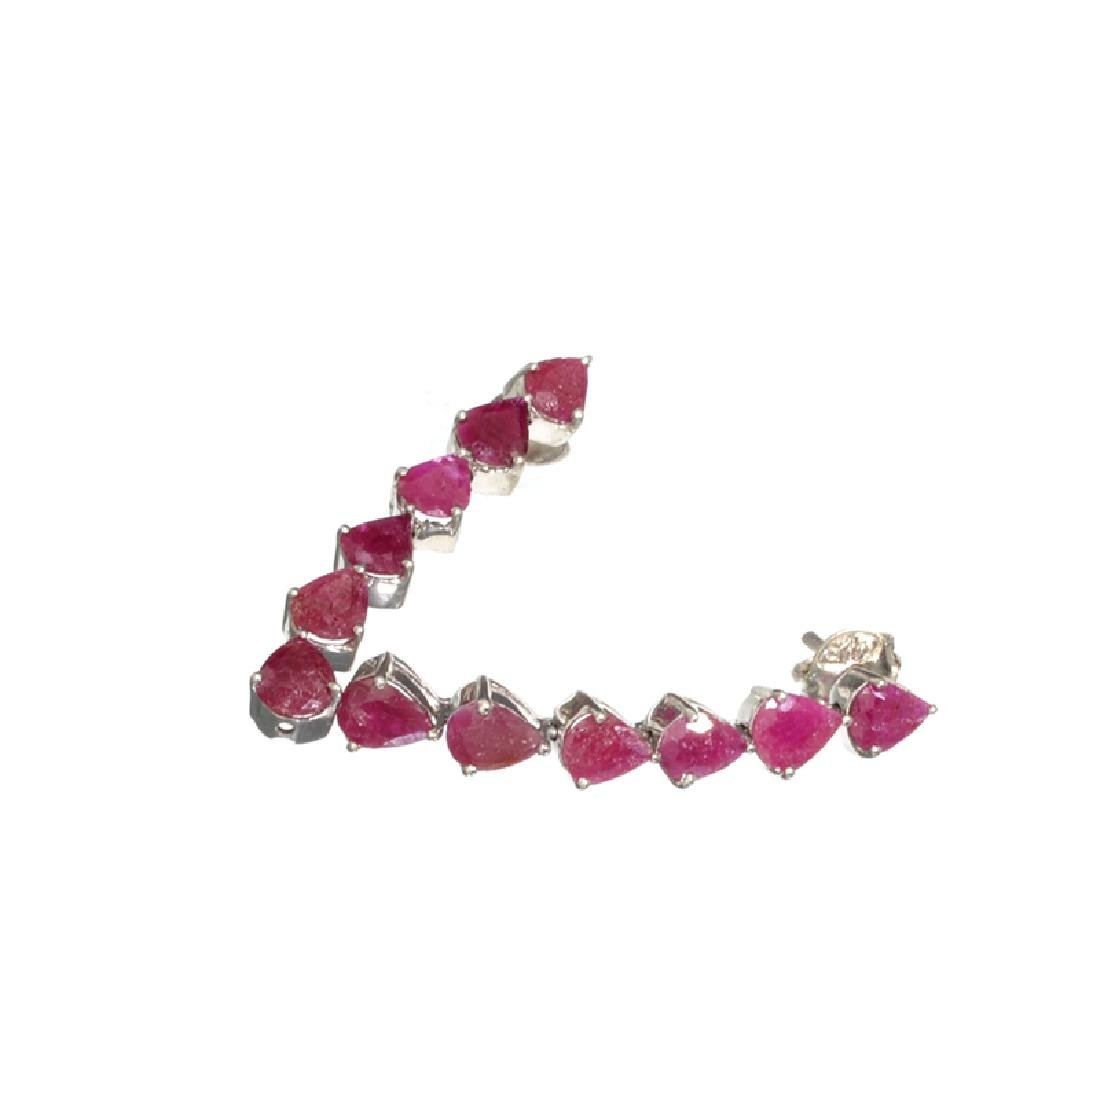 APP: 1k Fine Jewelry 5.14CT Pear Cut Ruby And Sterling